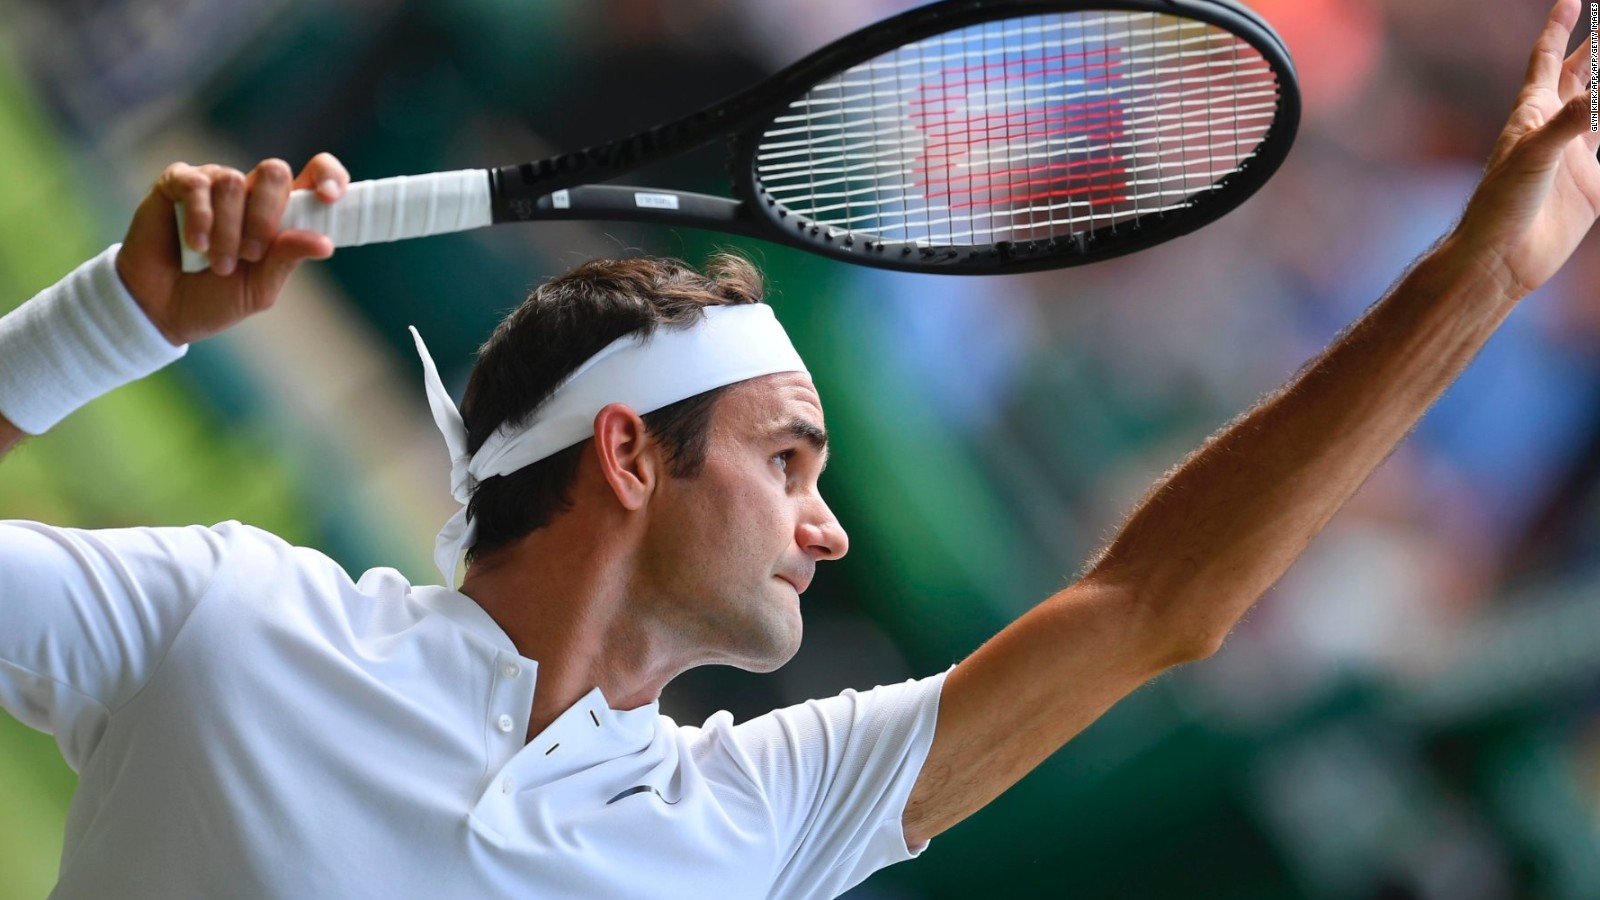 Federer as youve never heard him before cnn video voltagebd Image collections